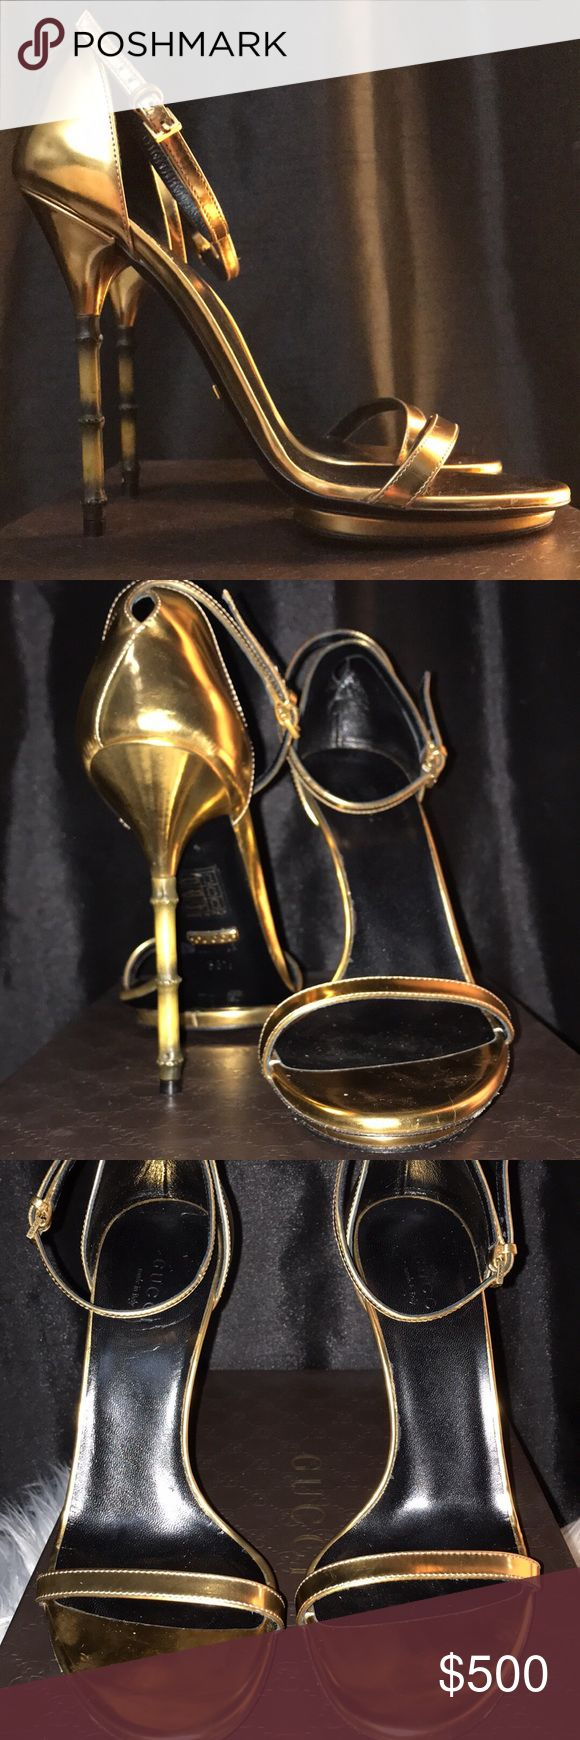 """Gucci bamboo heels *GUARANTEED 100% AUTHENTIC* NONE of my items are """"knock offs"""" so please do not send me ridiculous low prices.  Gucci bamboo heels  Worn once, good as new Size 38.5 Comes with box, dust bag and heel replacements Gucci Shoes Heels"""